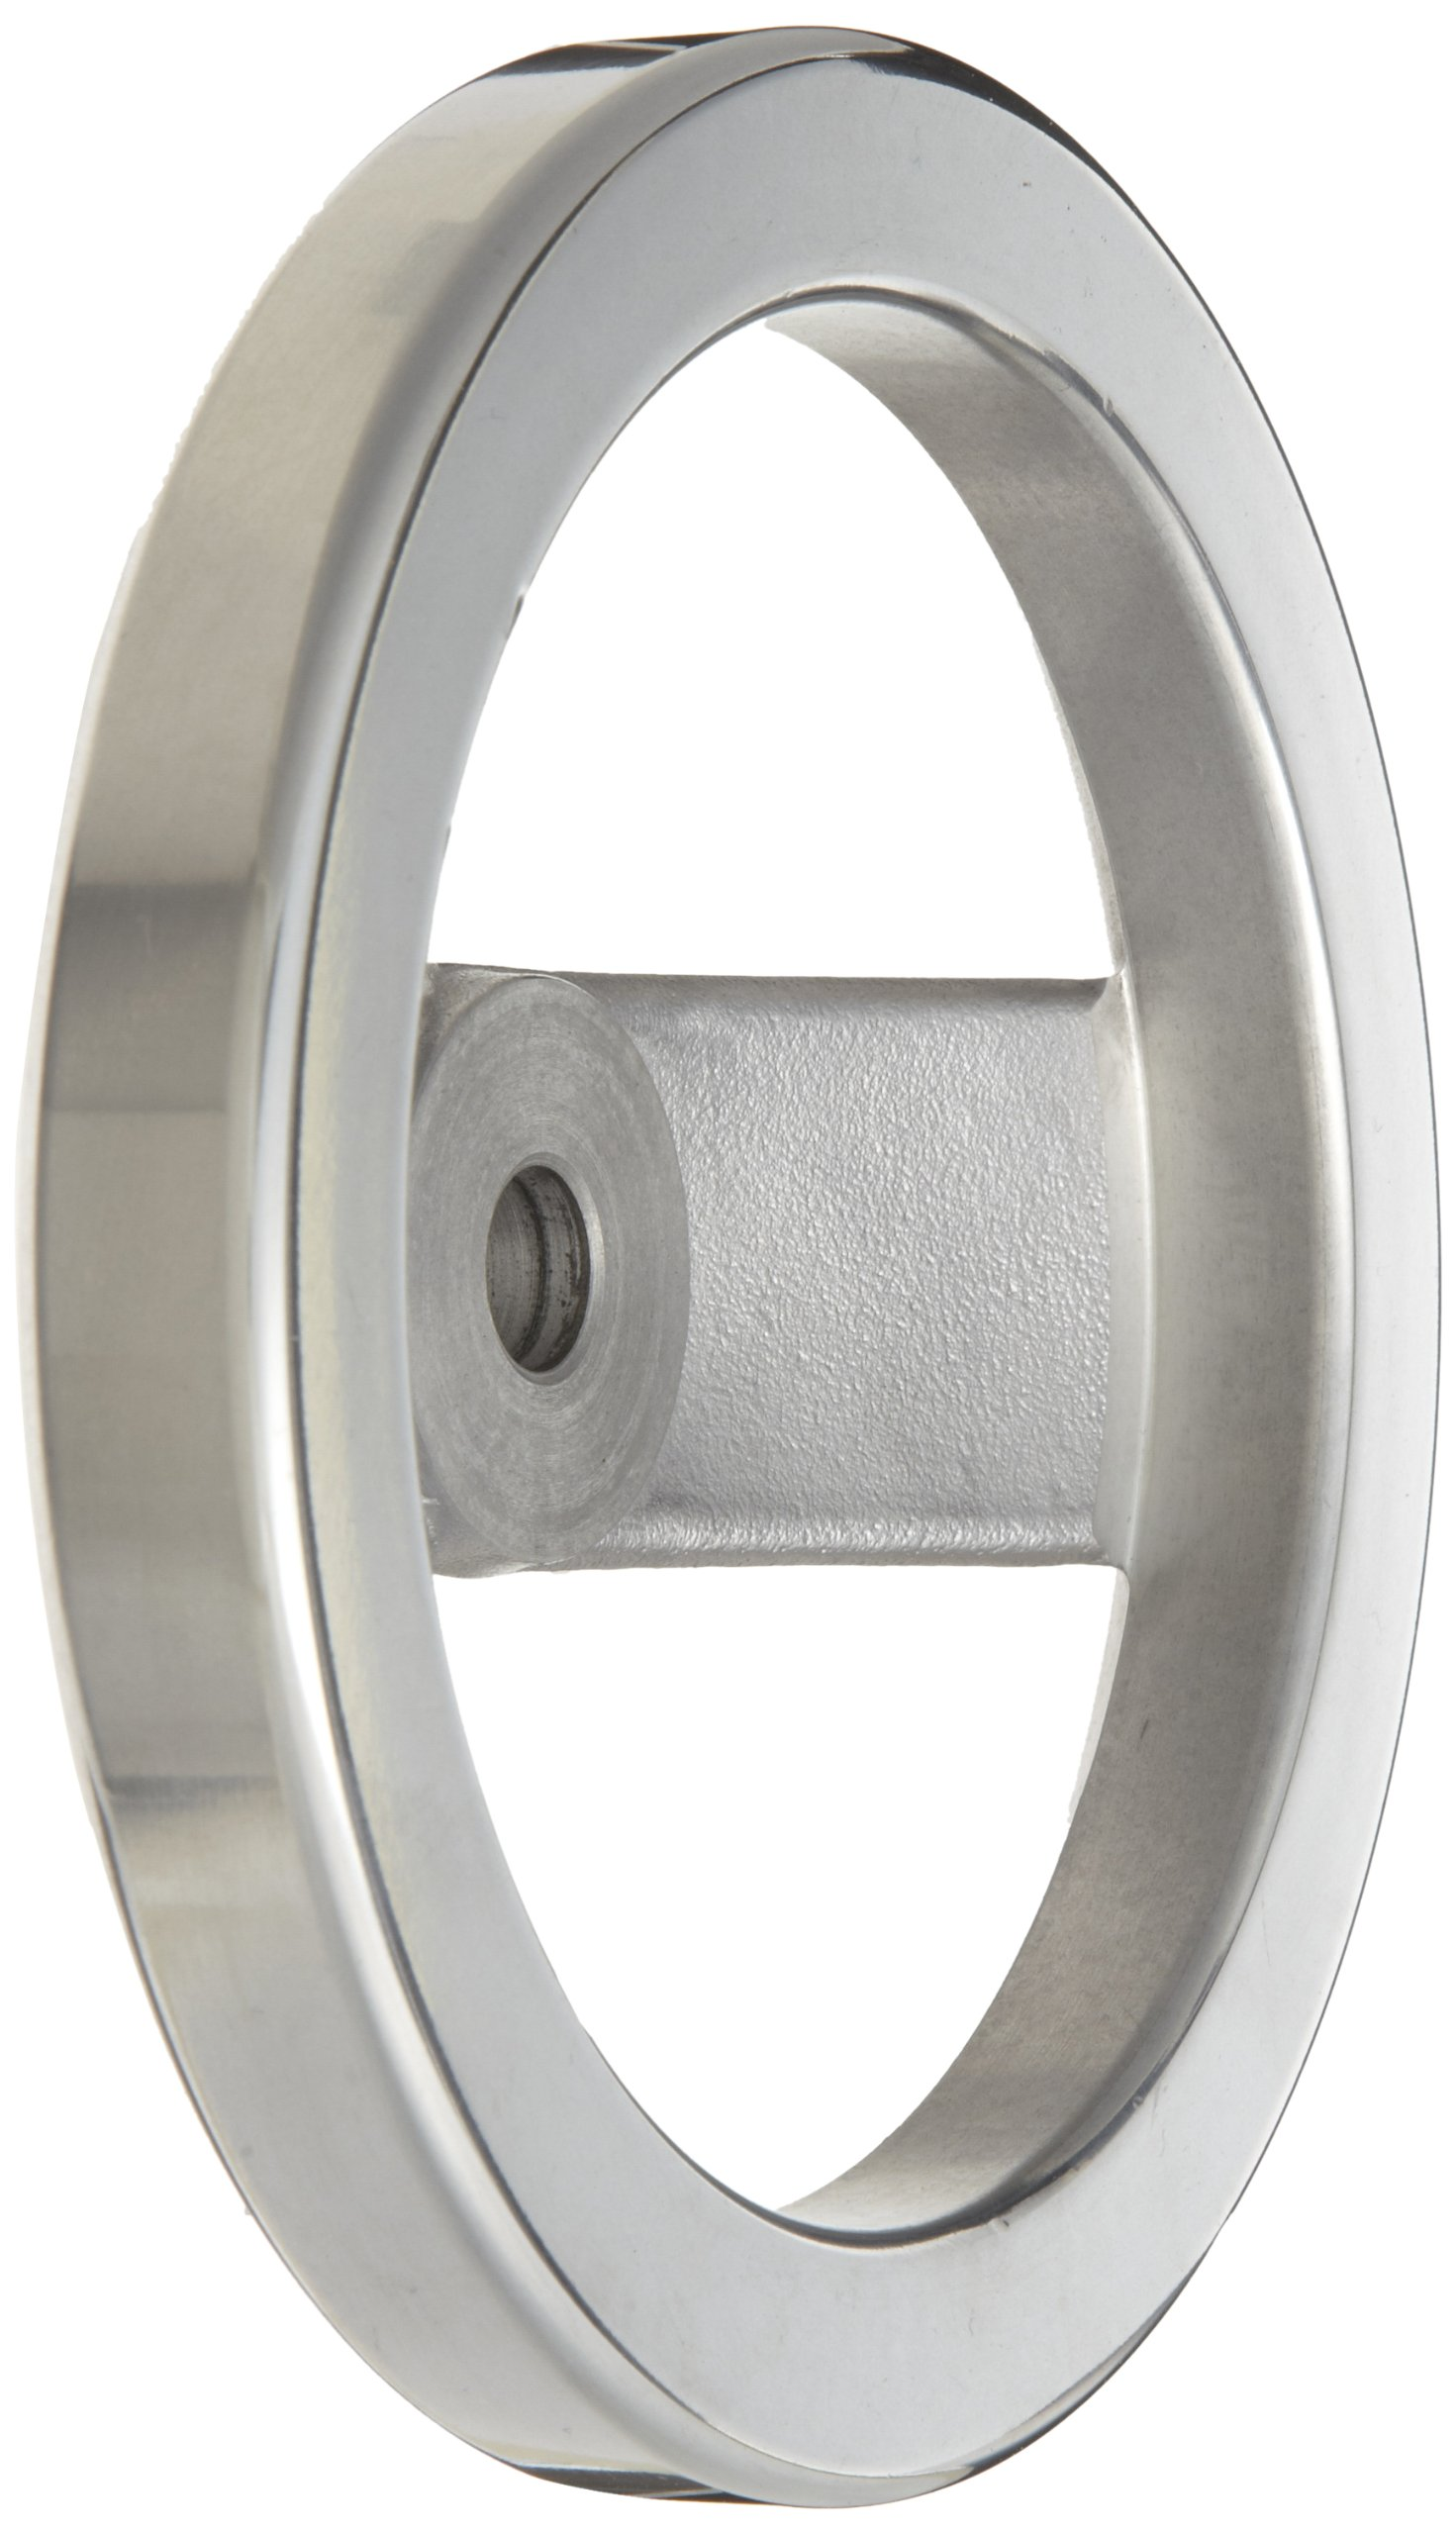 2 Spoked Polished Aluminum Dished Hand Wheel without Handle, 6'' Diameter, 1/2'' Hole Diameter (Pack of 1)